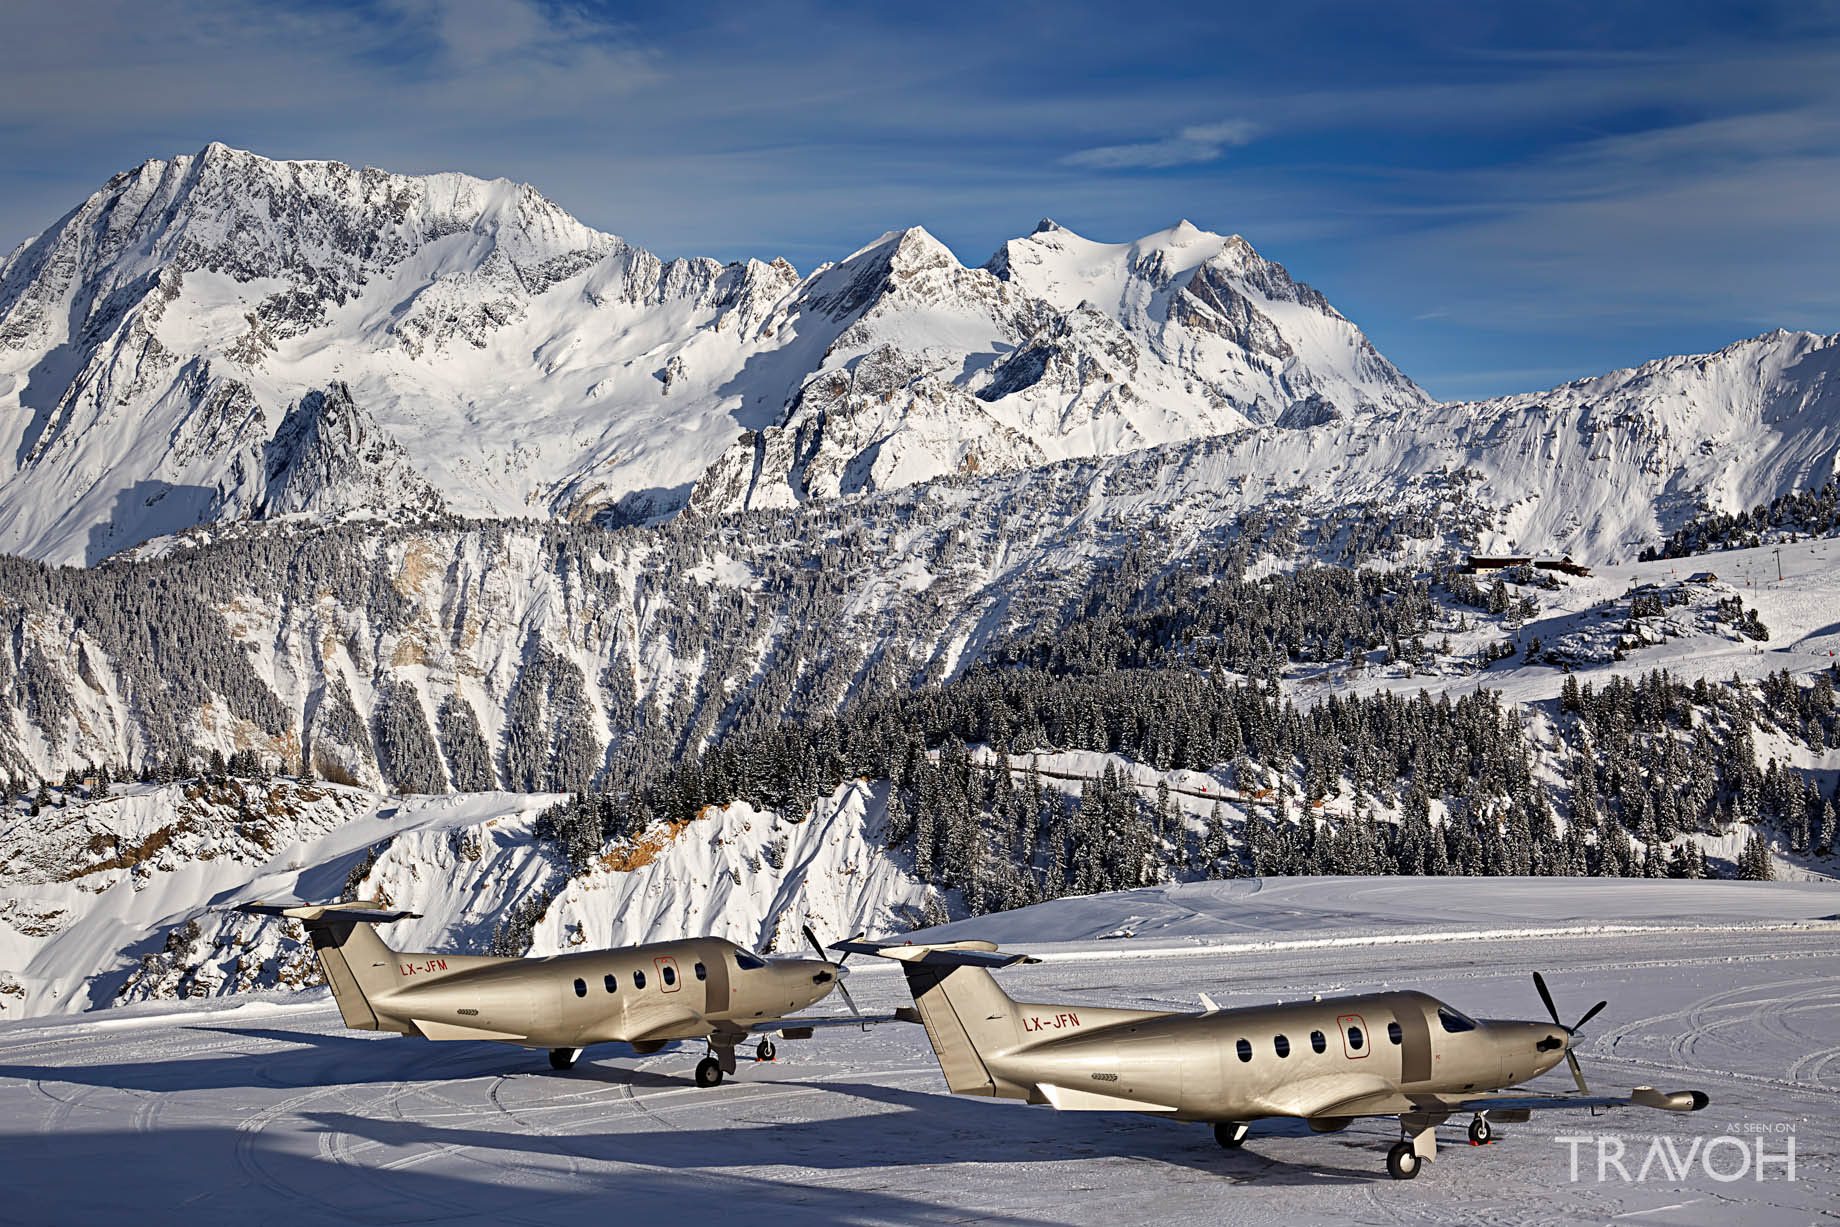 Courchevel Altiport - The 10 Best Off-Piste Winter Activities in Courchevel, France